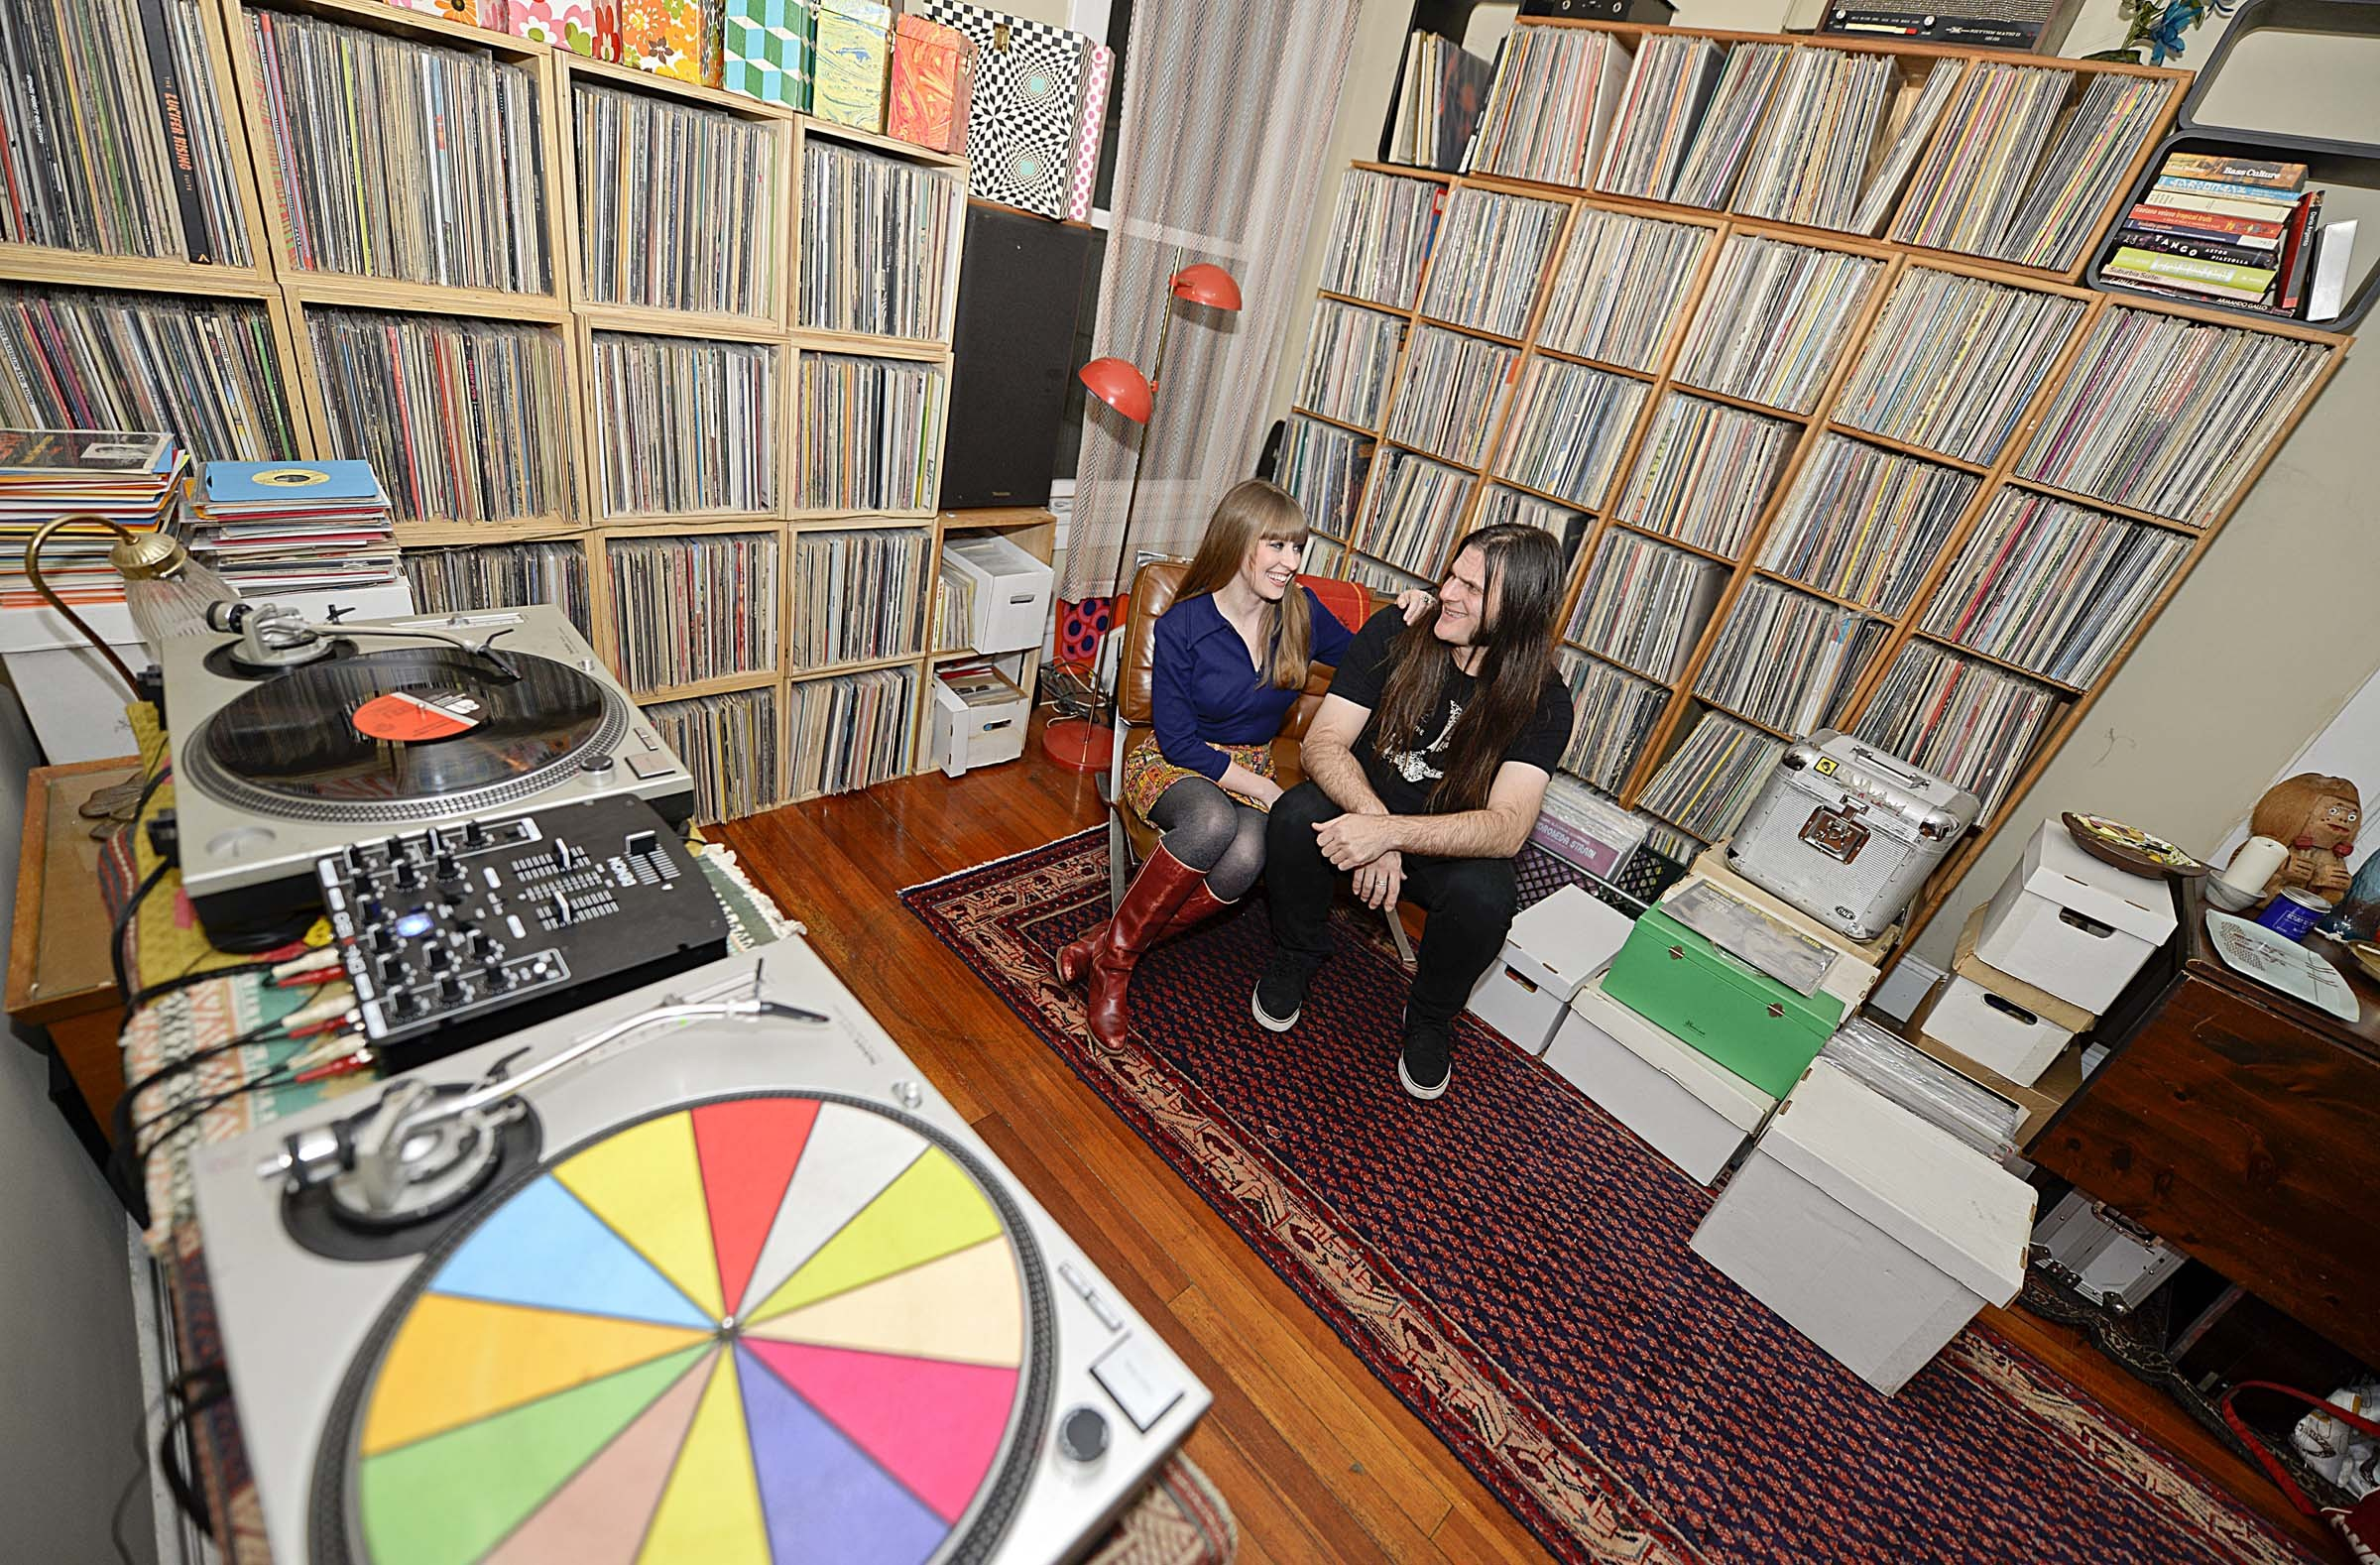 Musical Couples Richmonders Find Love Through Record